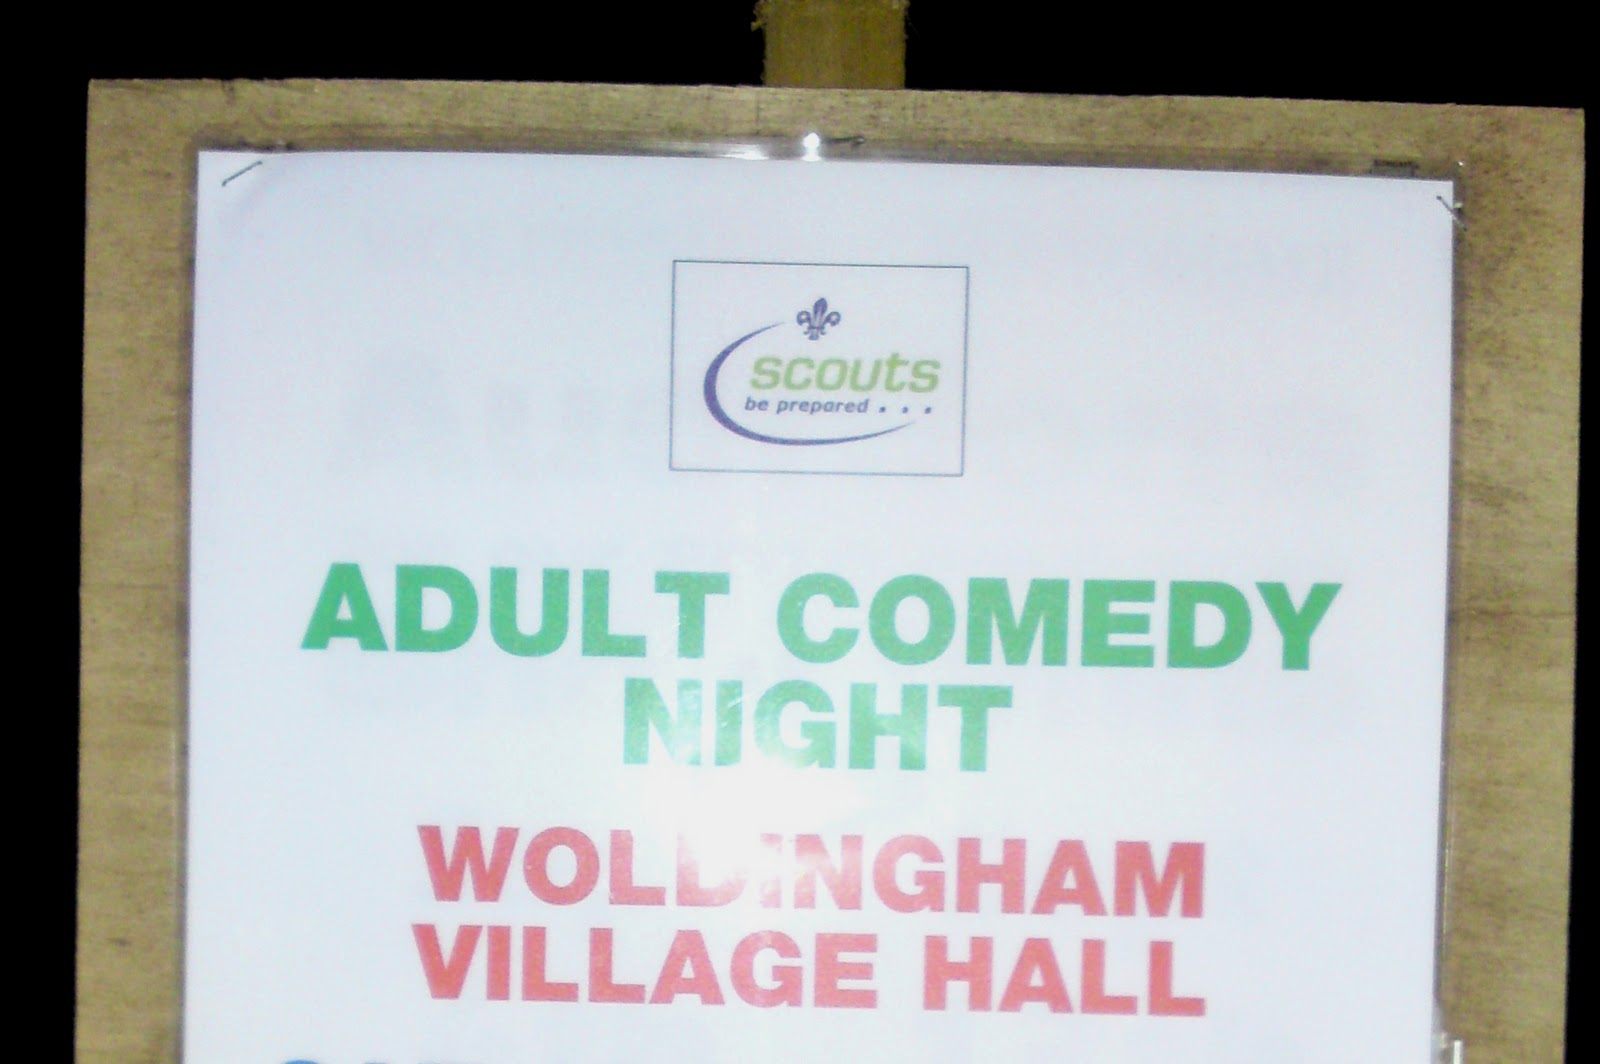 Be prepared: Woldingham scouts do adult comedy